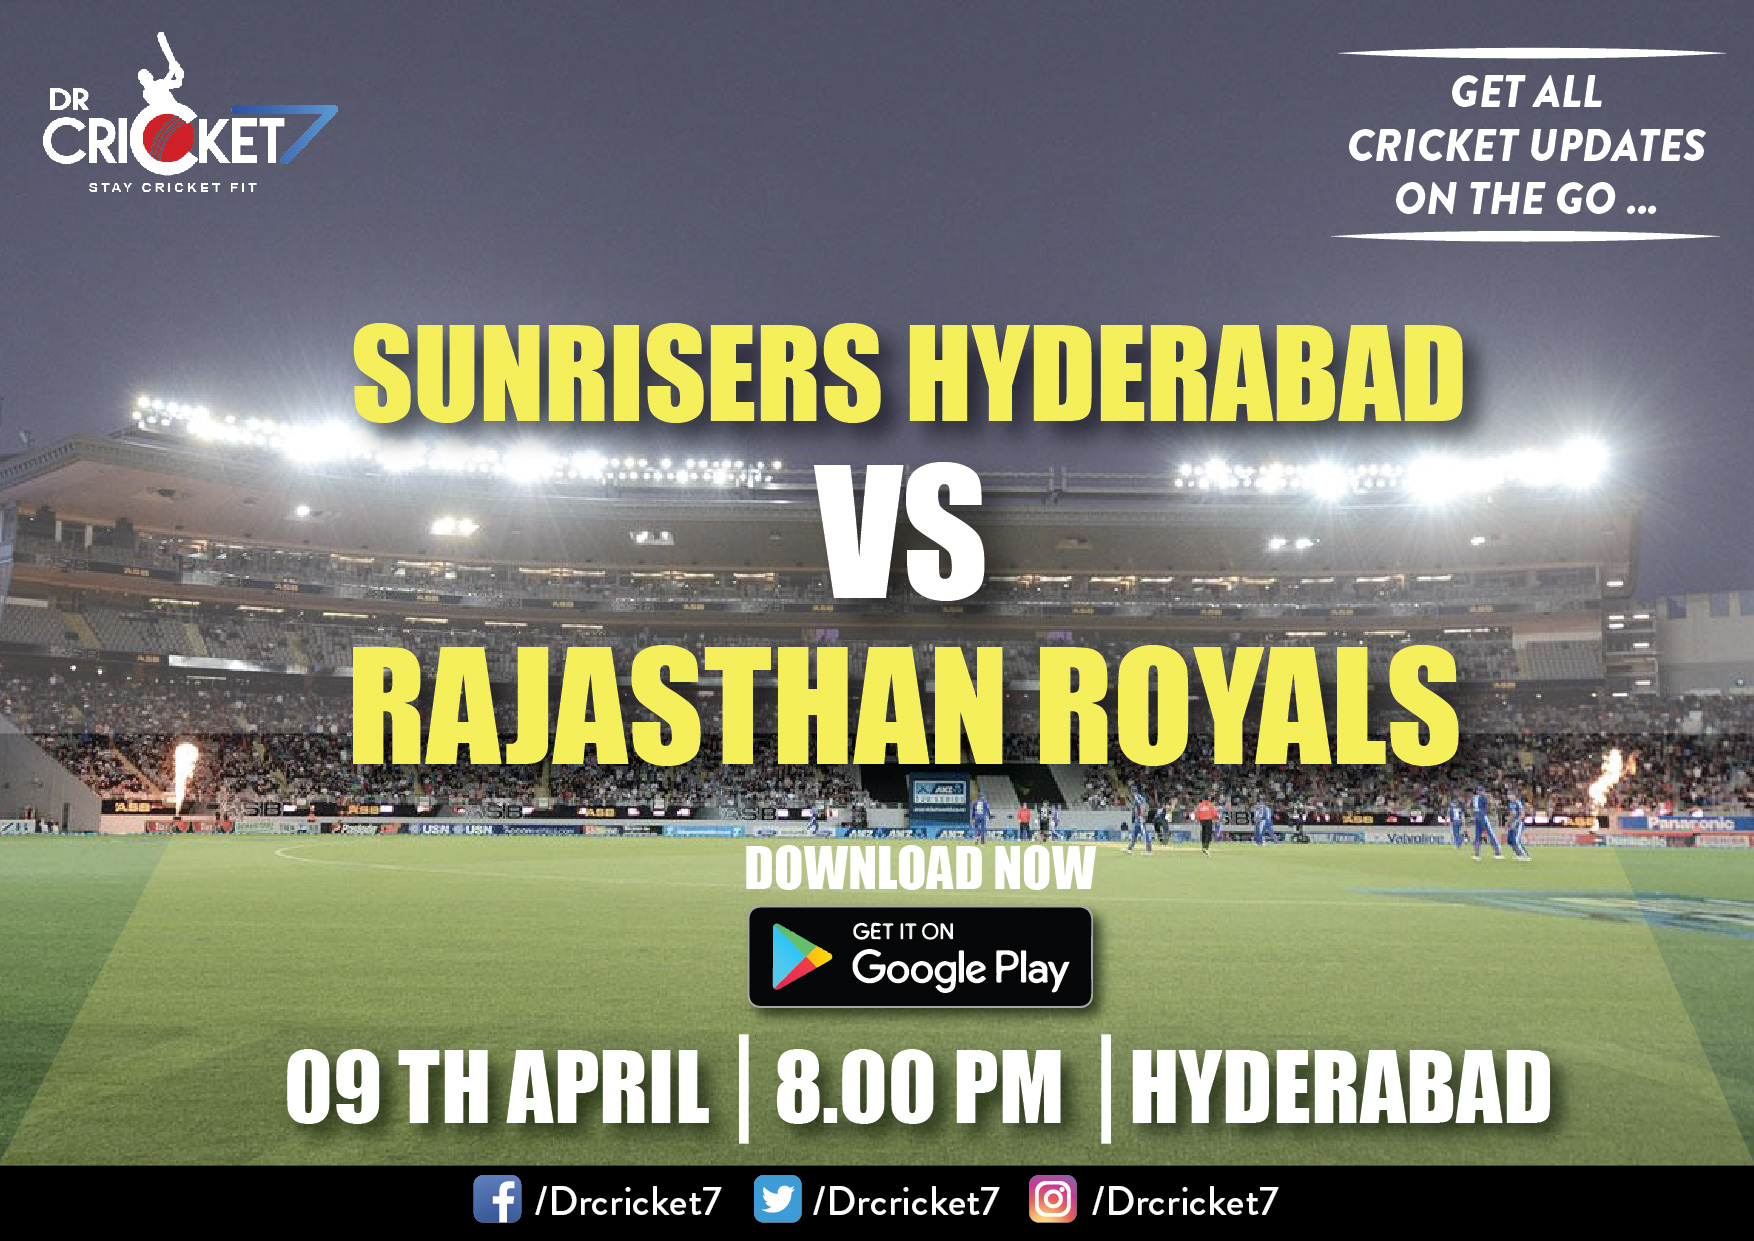 IPL2018 Live Streaming: SunRisers Hyderabad v Rajasthan Royals